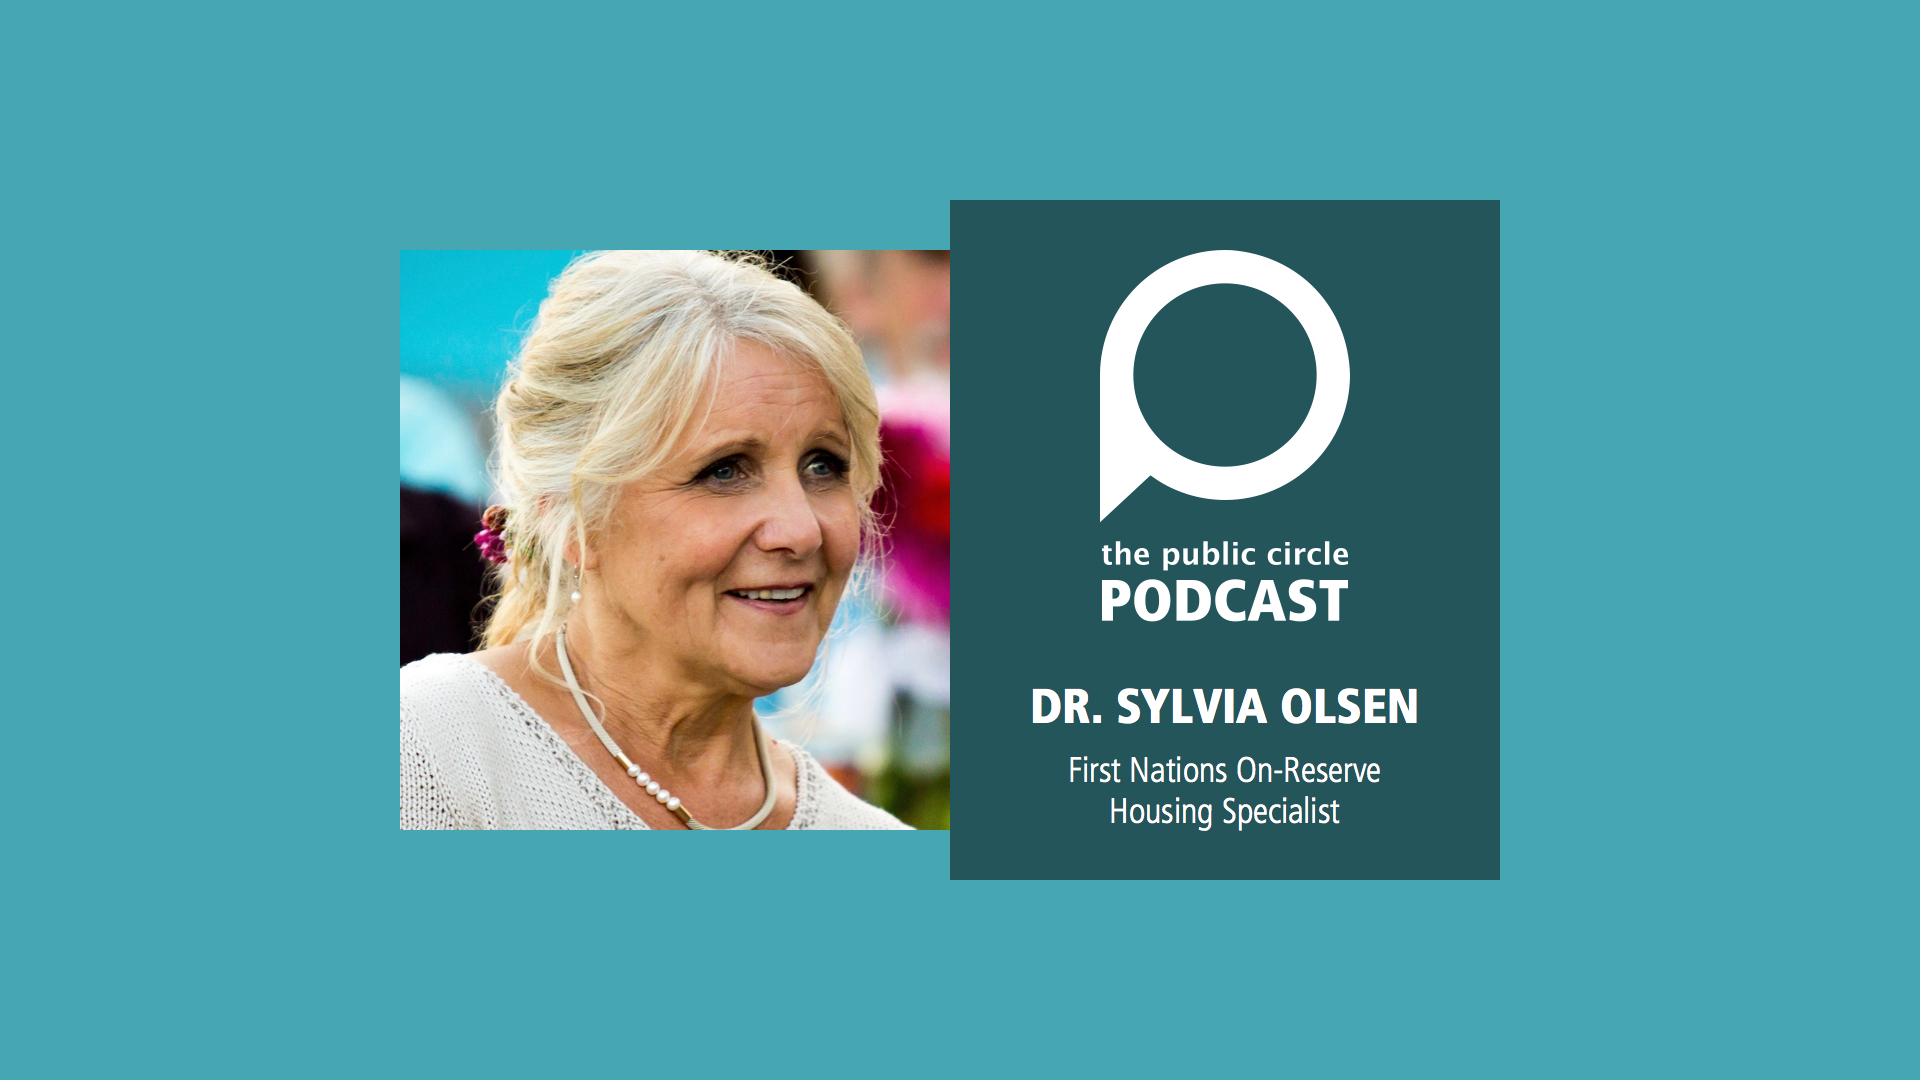 PODCAST: Dr. Sylvia Olsen, First Nations on-reserve housing specialist